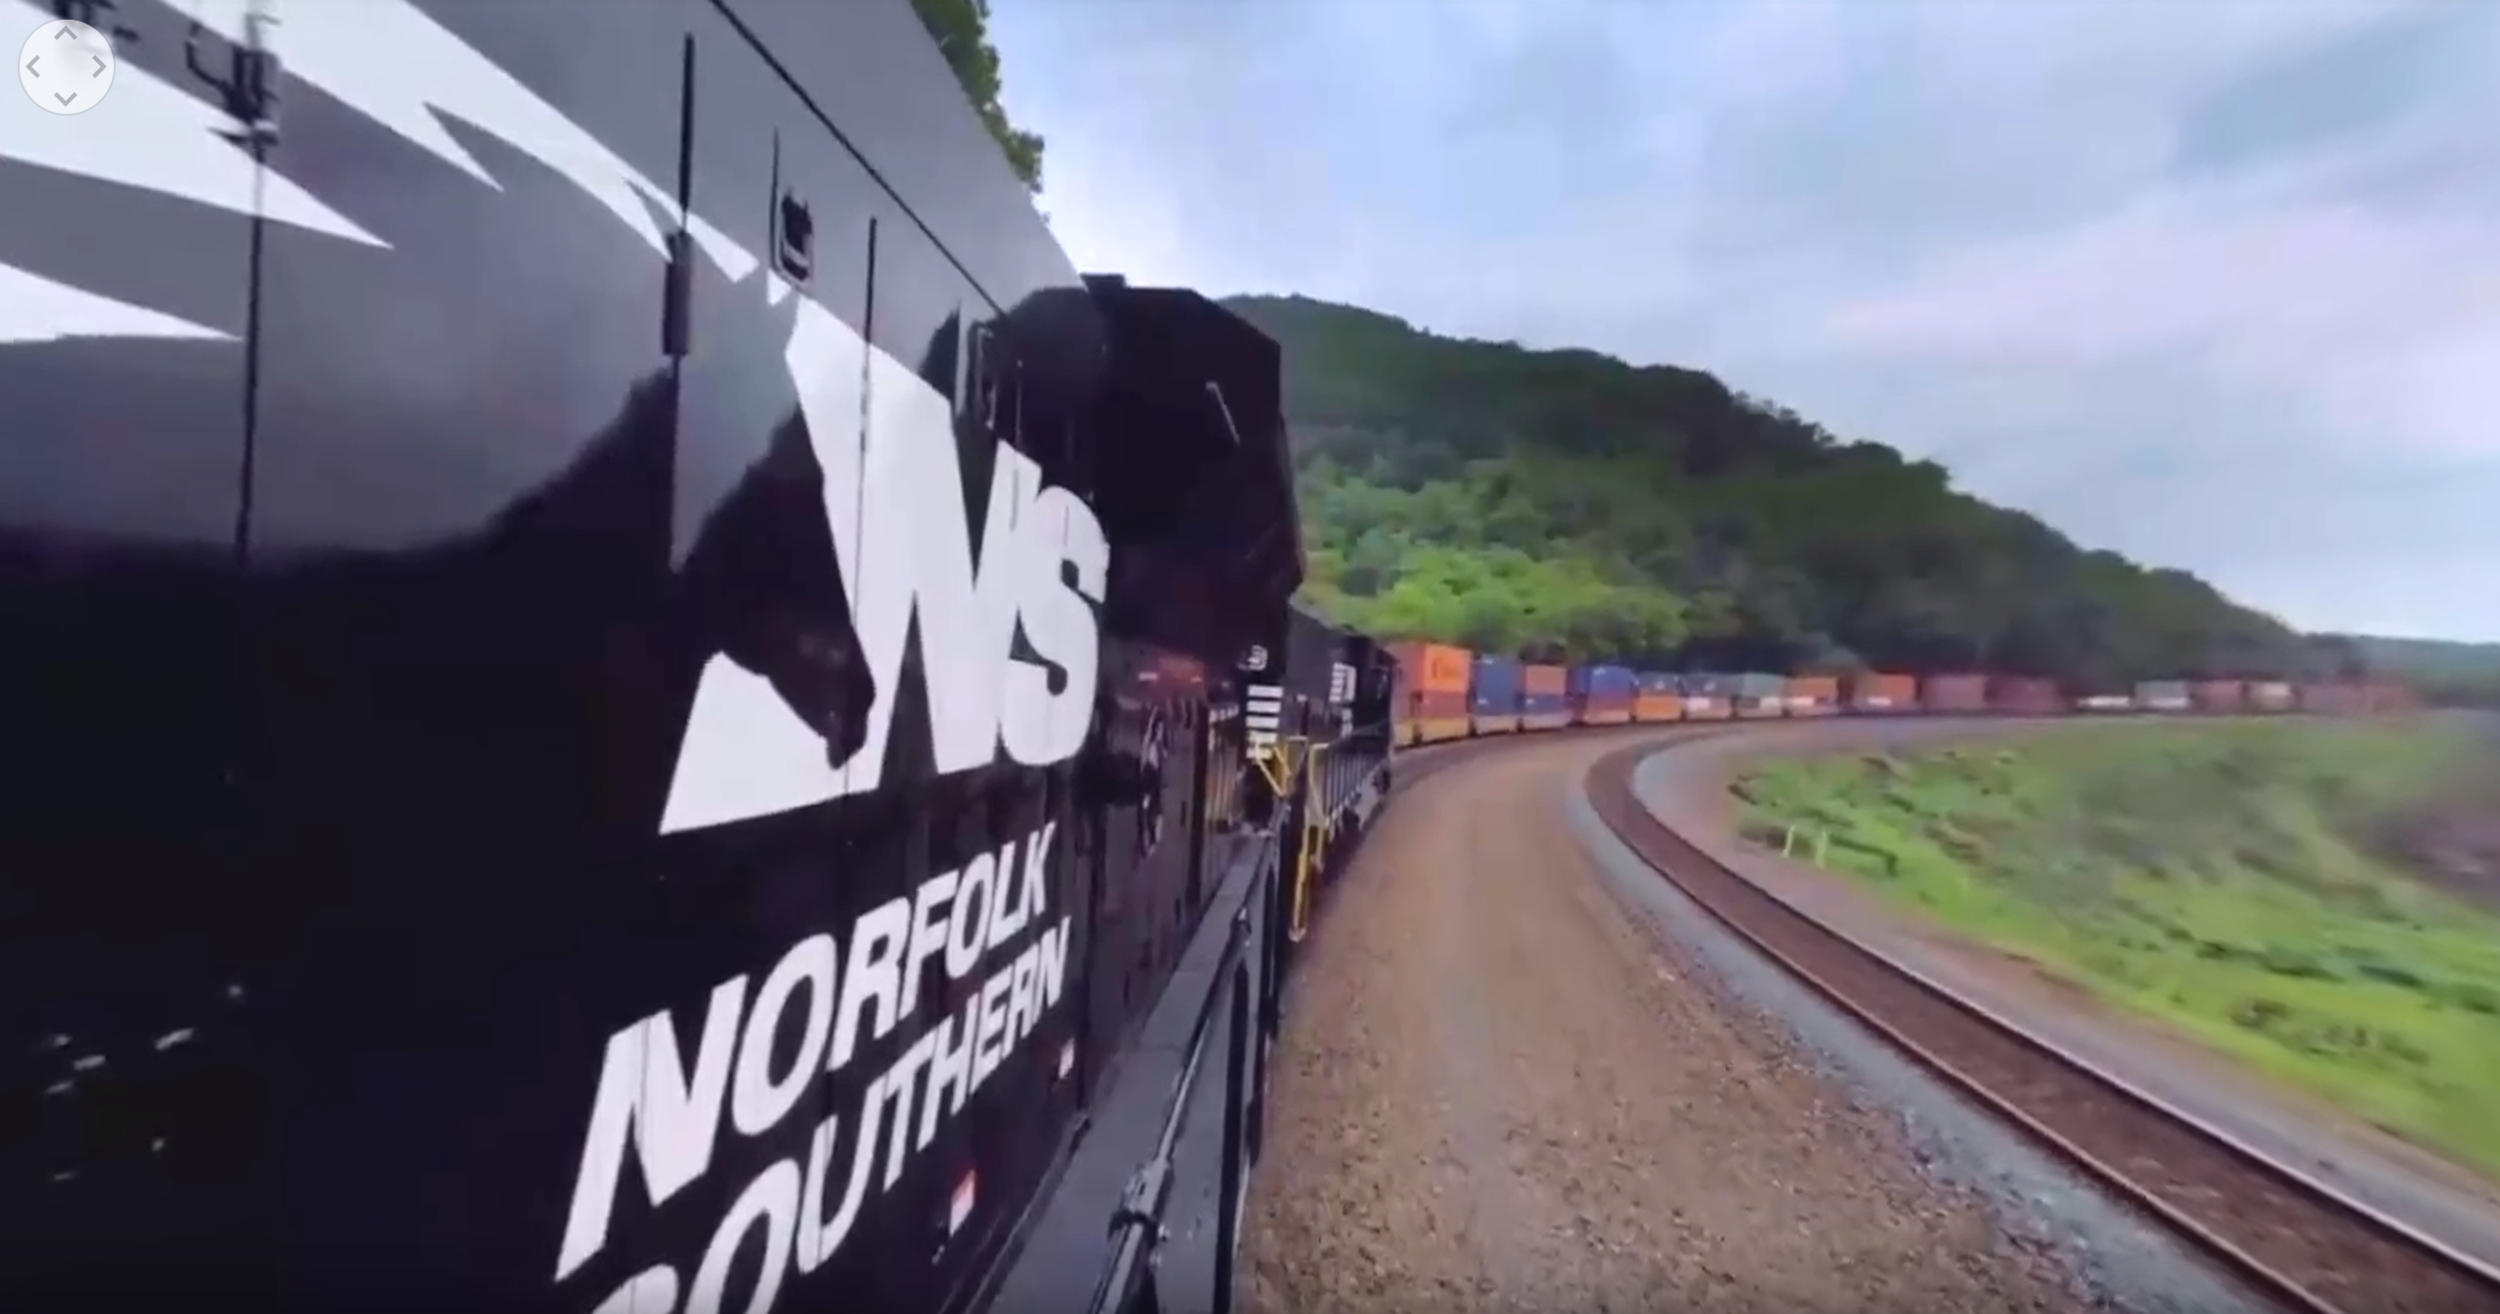 Norfolk Southern 360° Experience